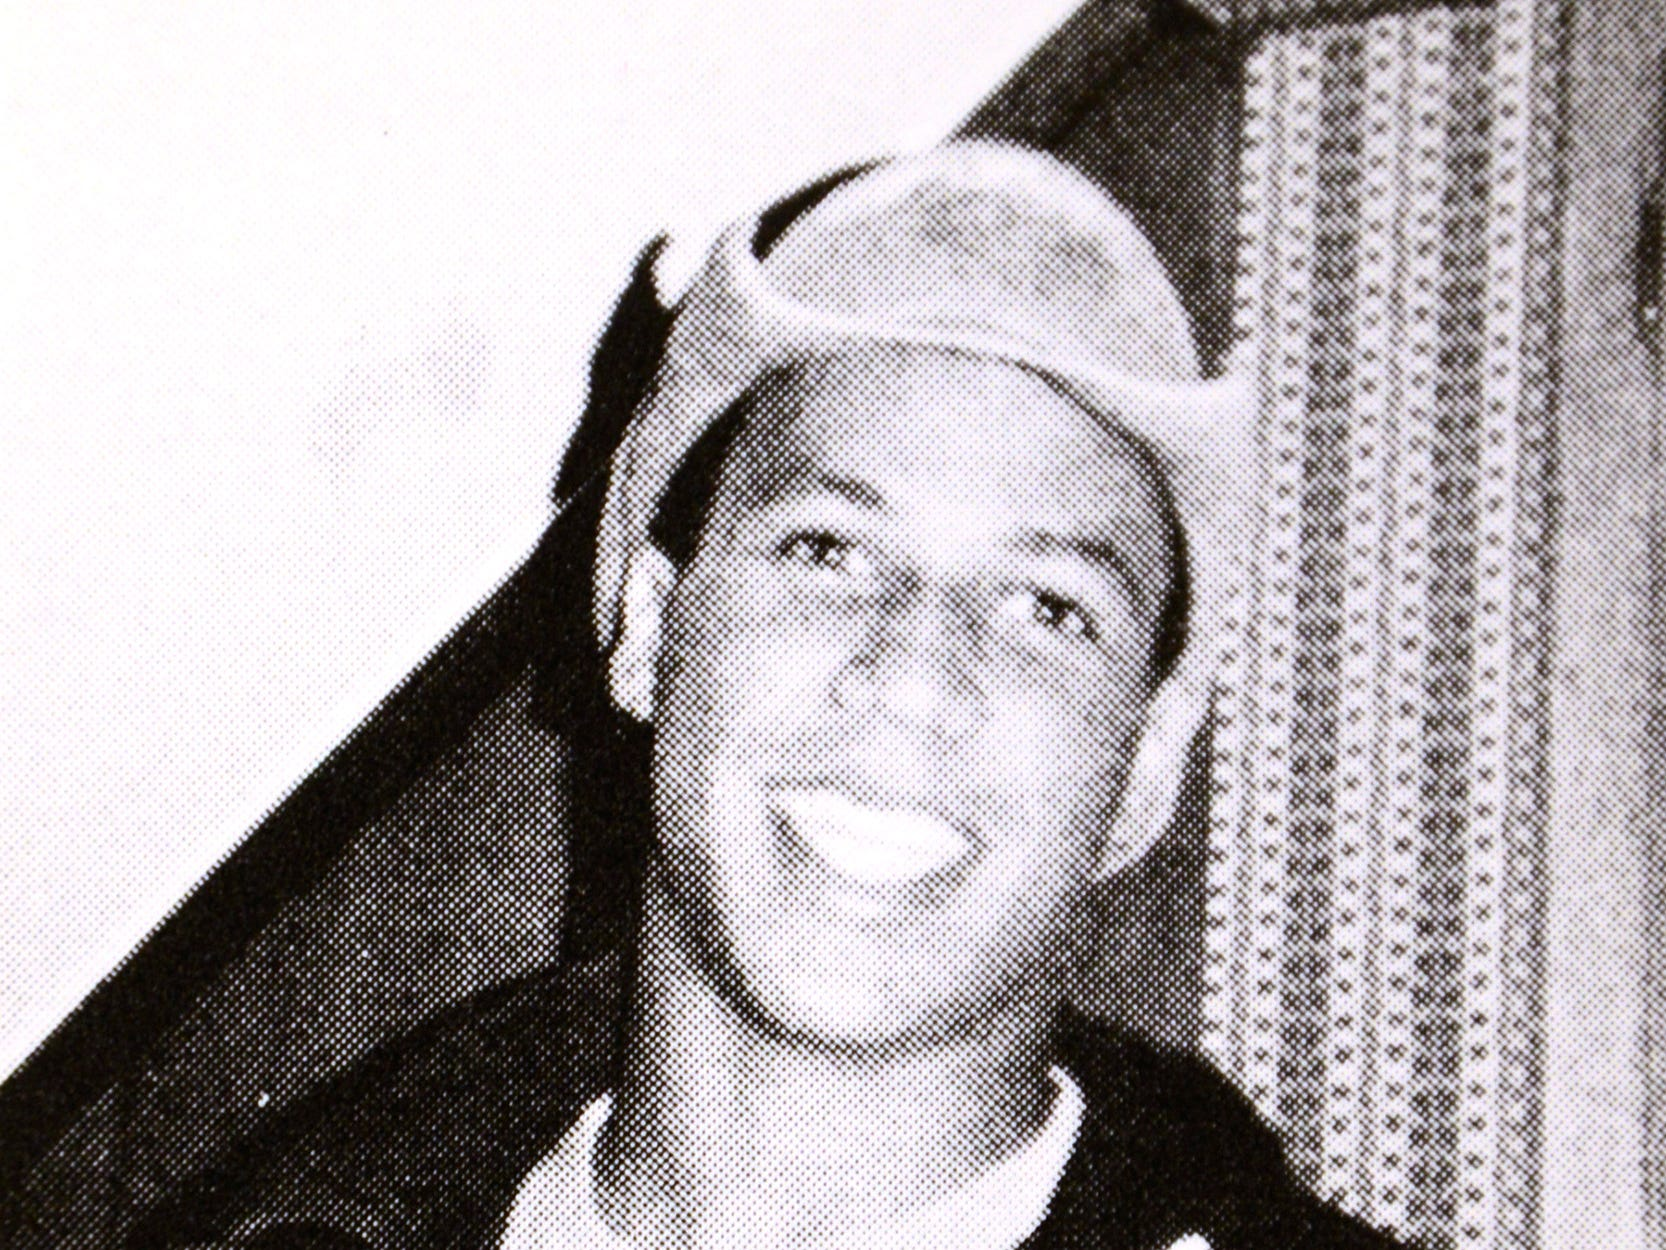 Cory Booker yearbook photos 1987.